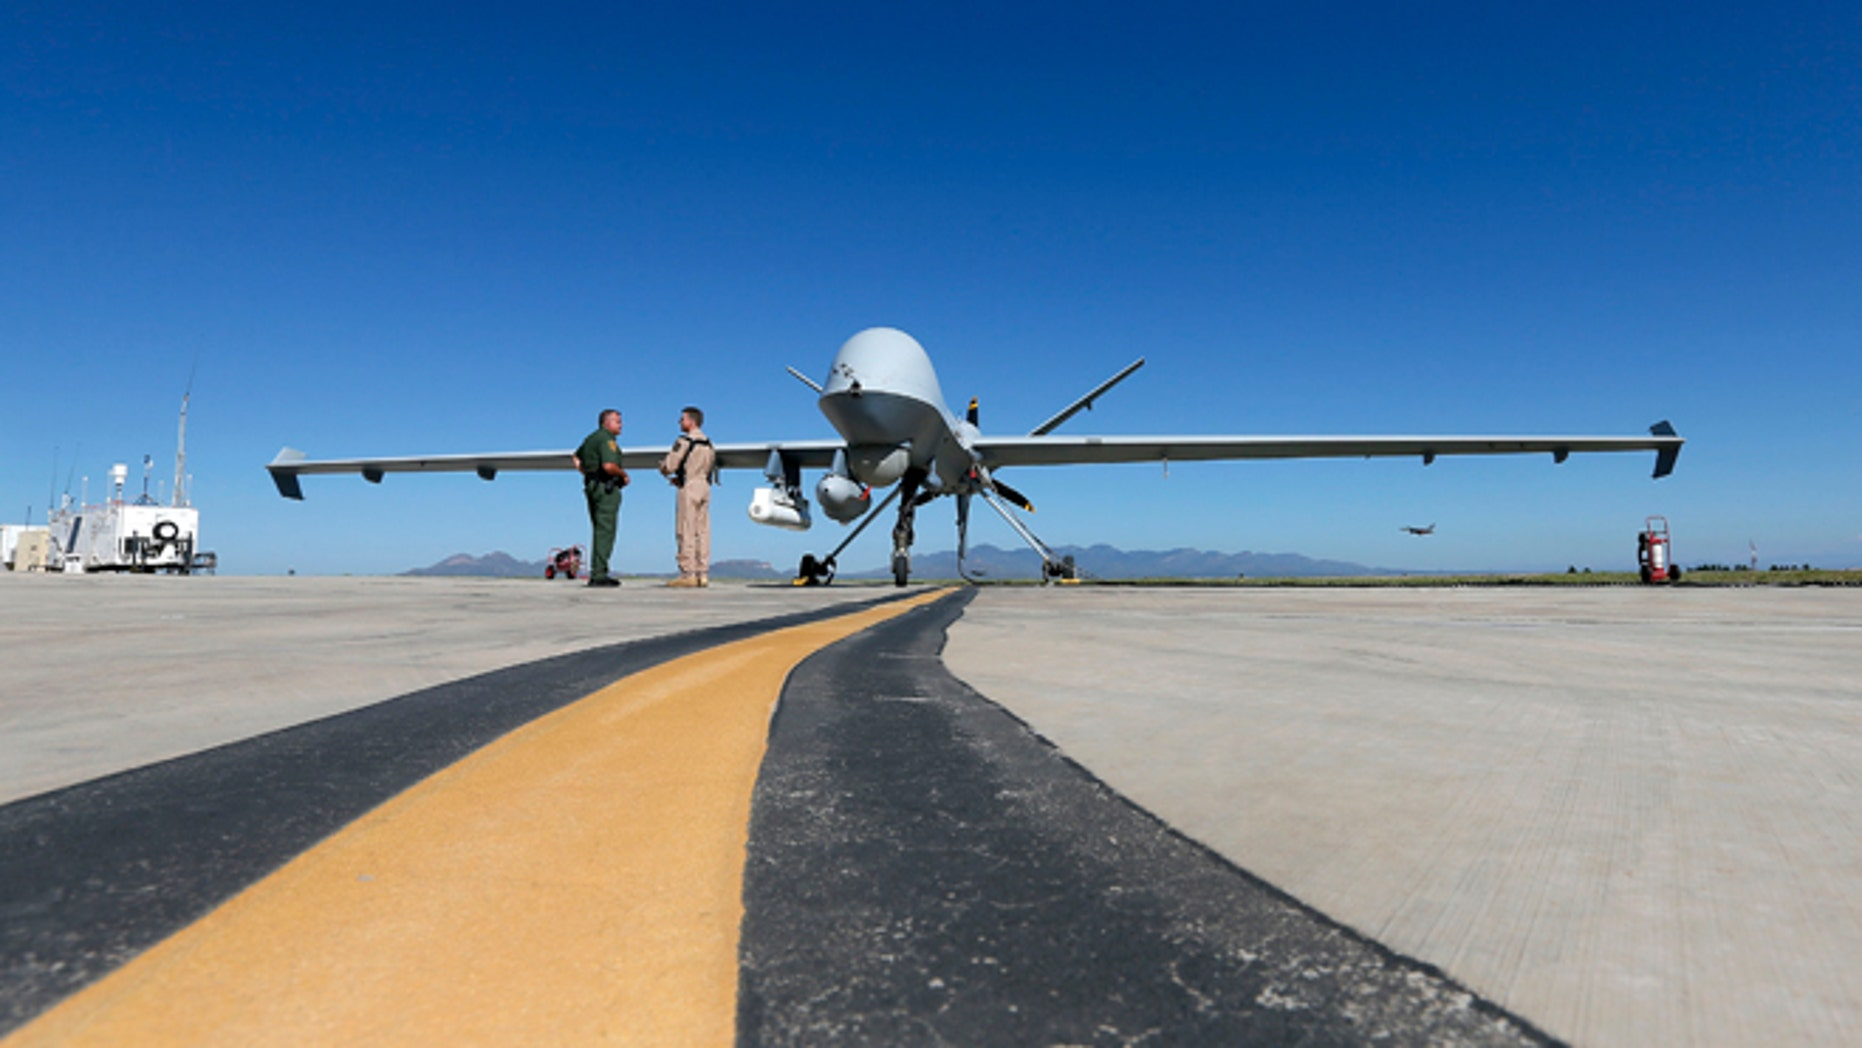 Lothar Eckardt, right, executive director of National Air Security Operations at U.S. Customs and Border Protection, speaks with a Customs and Border Patrol agent prior to a drone aircraft flight, Wednesday, Sept 24, 2014 at Ft. Huachuca in Sierra Vista, Ariz. The U.S. government now patrols nearly half the Mexican border by drones alone in a largely unheralded shift to control desolate stretches where there are no agents, camera towers, ground sensors or fences, and it plans to expand the strategy to the Canadian border. It represents a significant departure from a decades-old approach that emphasizes boots on the ground and fences. (AP Photo/Matt York)